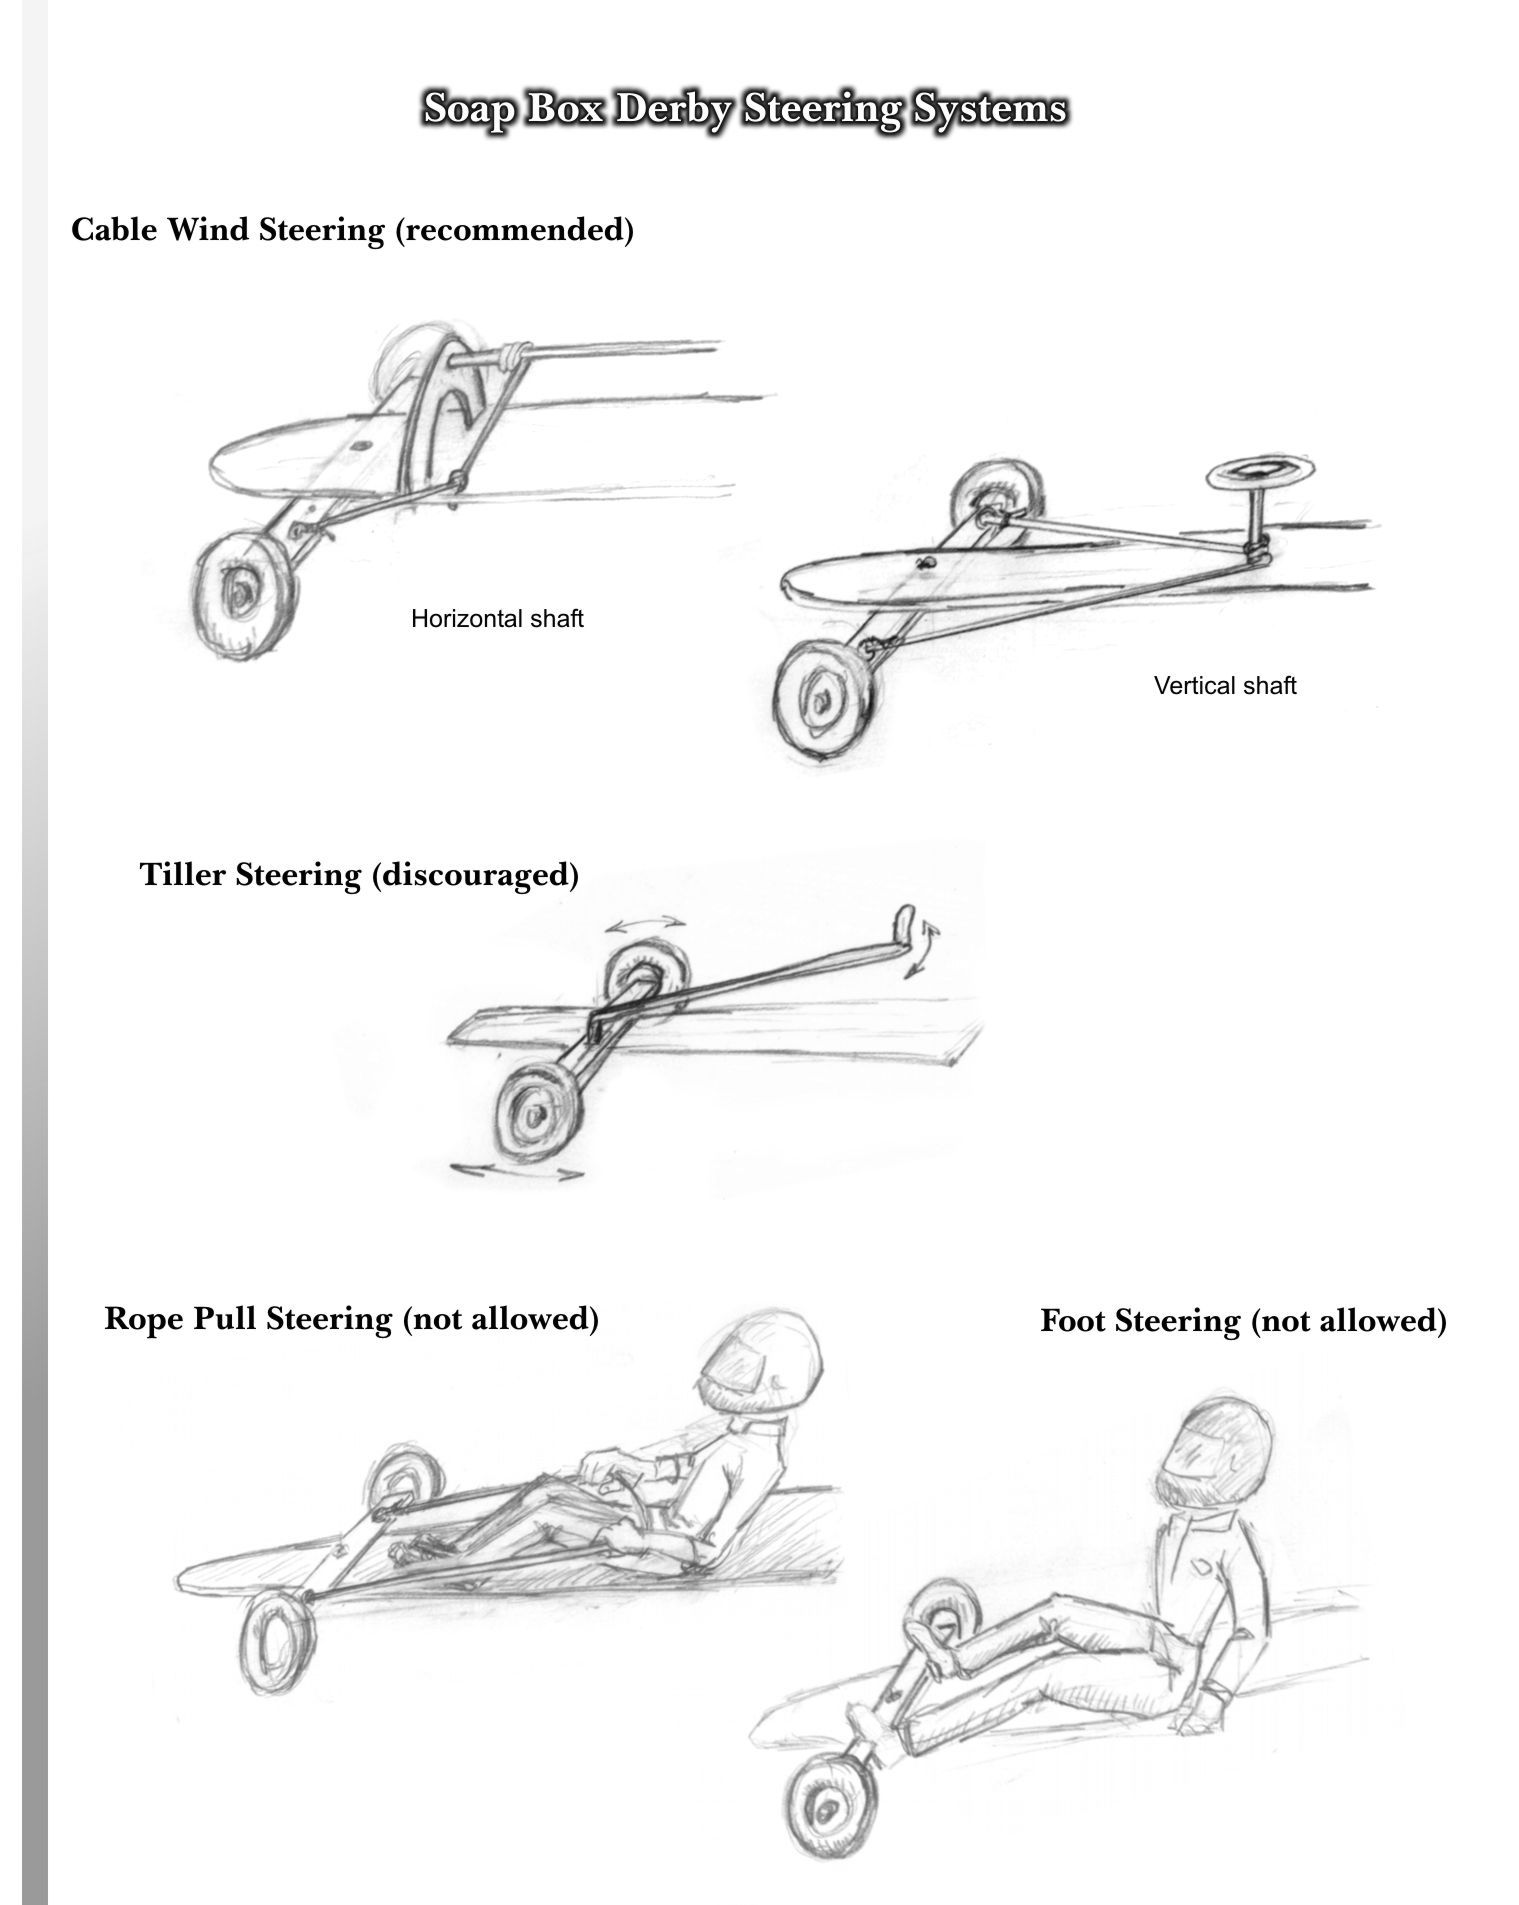 medium resolution of types of steering for soap box derby cars soapbox derby ideas wiring diagram 1955 aston martin db3s ft boxcar free download wiring